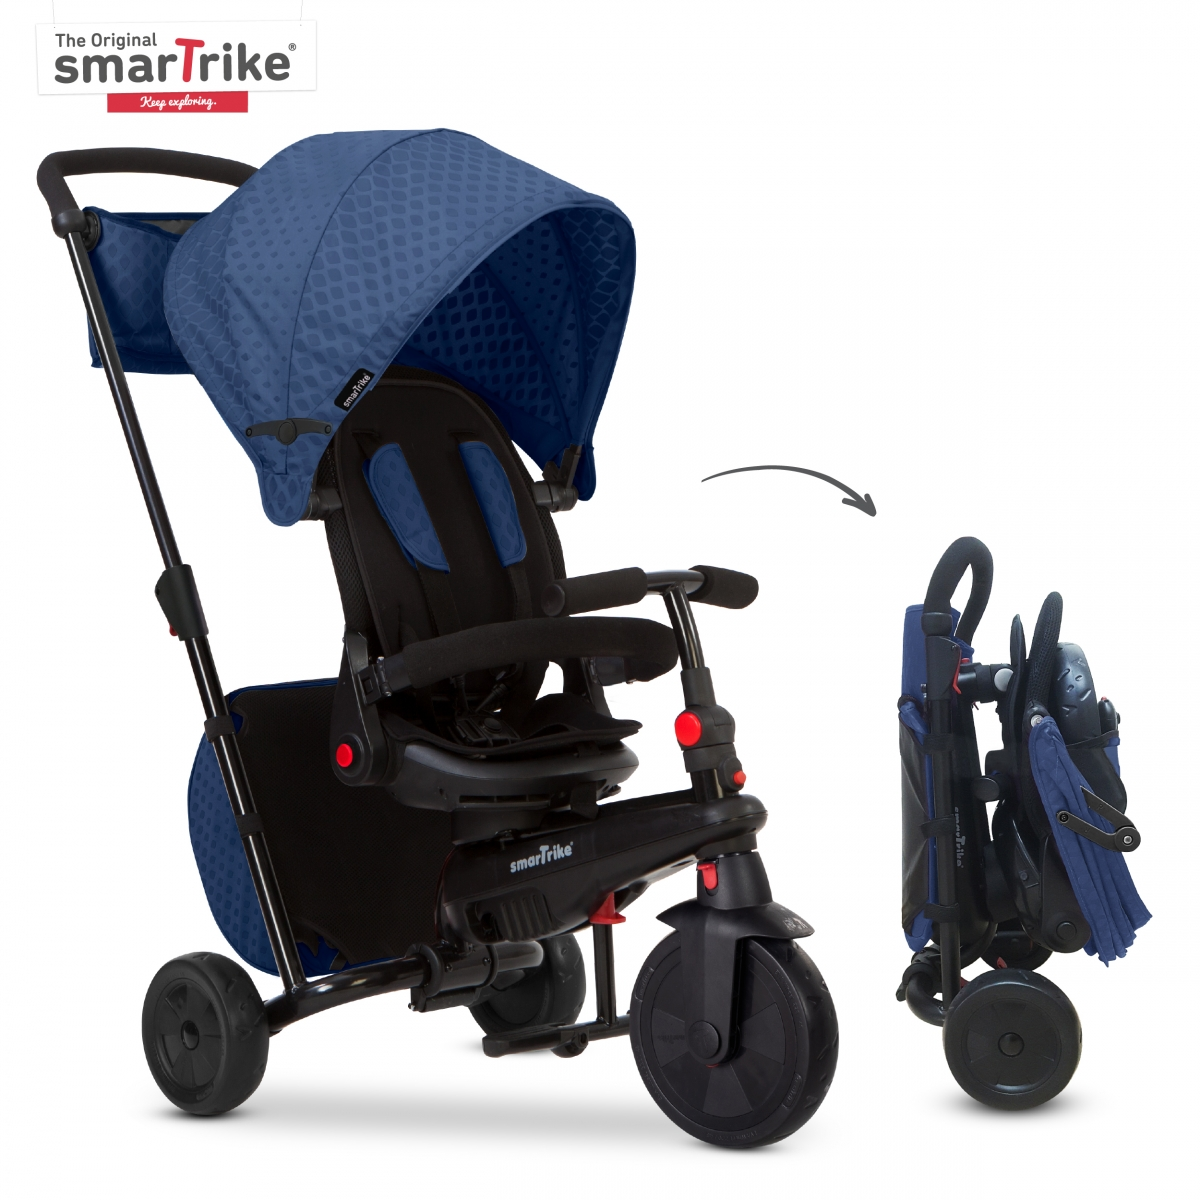 SmarTrike 8in1 Folding Baby Tricycle STR7 Blue (NEW)